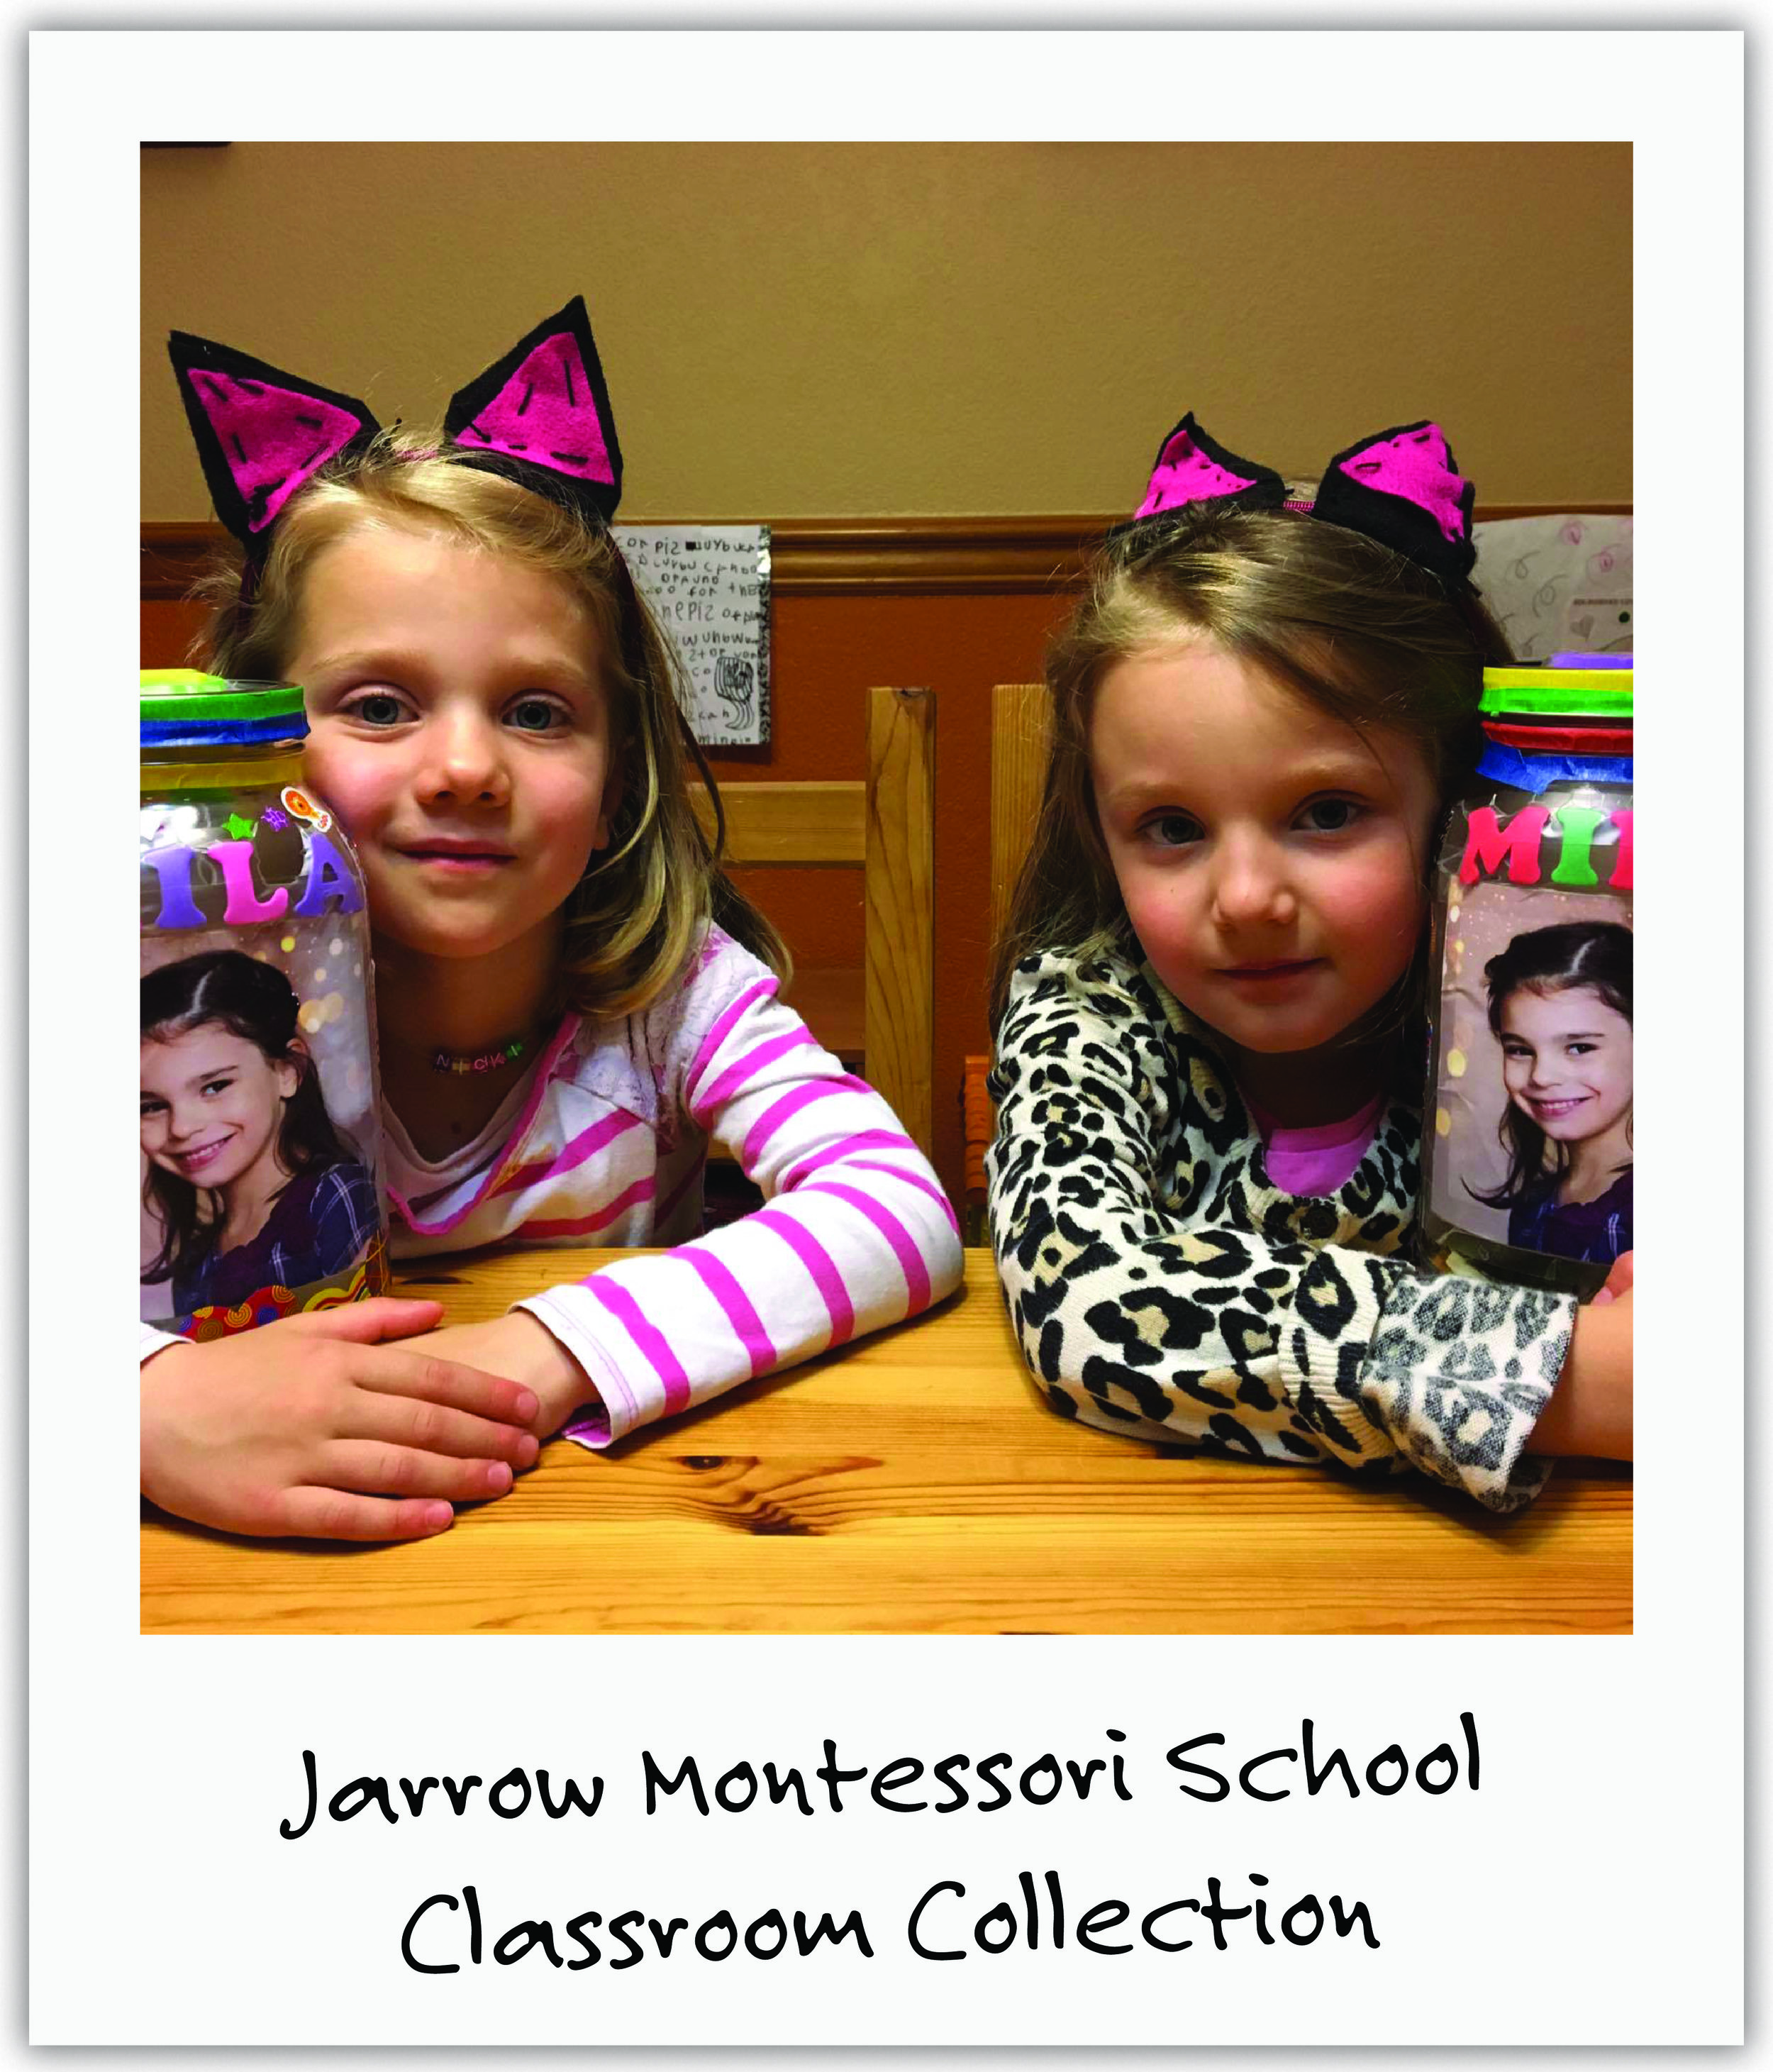 Mila's neighbors, Ellen and Nicole, decorated donation jars and joined efforts with their Montessori school to raise money and bring awareness to our cause.